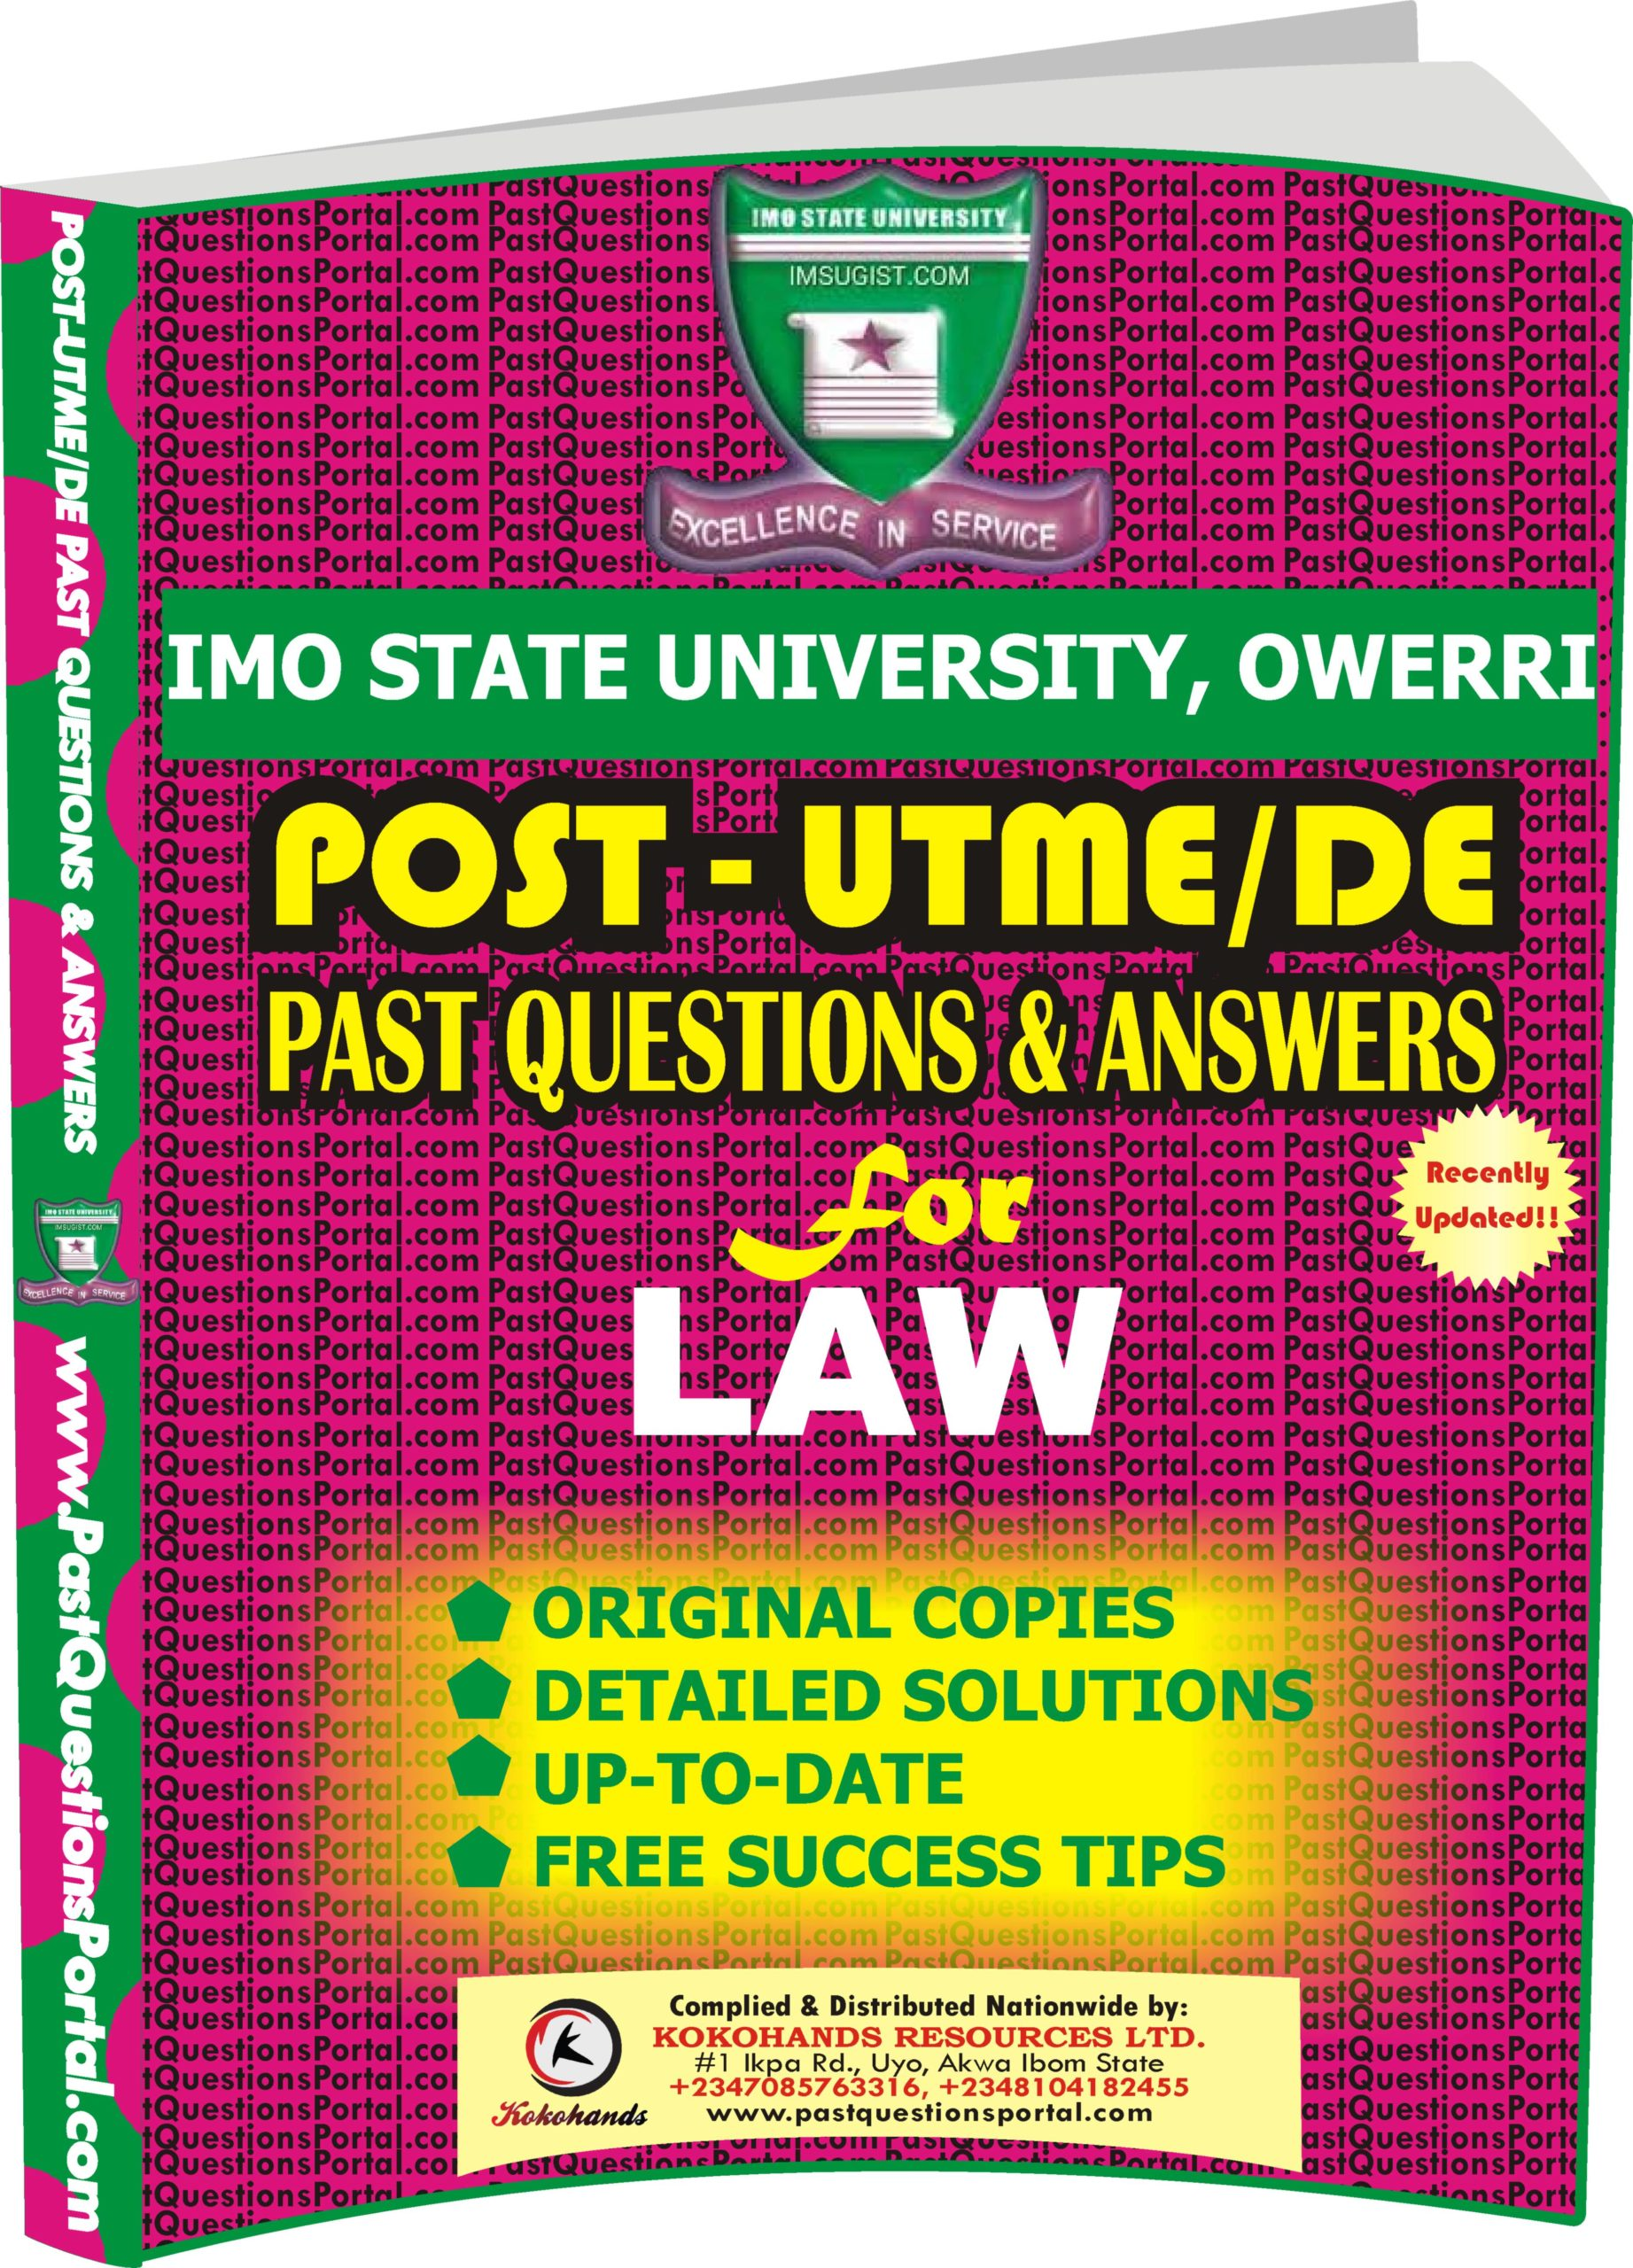 IMSU Post UTME Past Questions for LAW